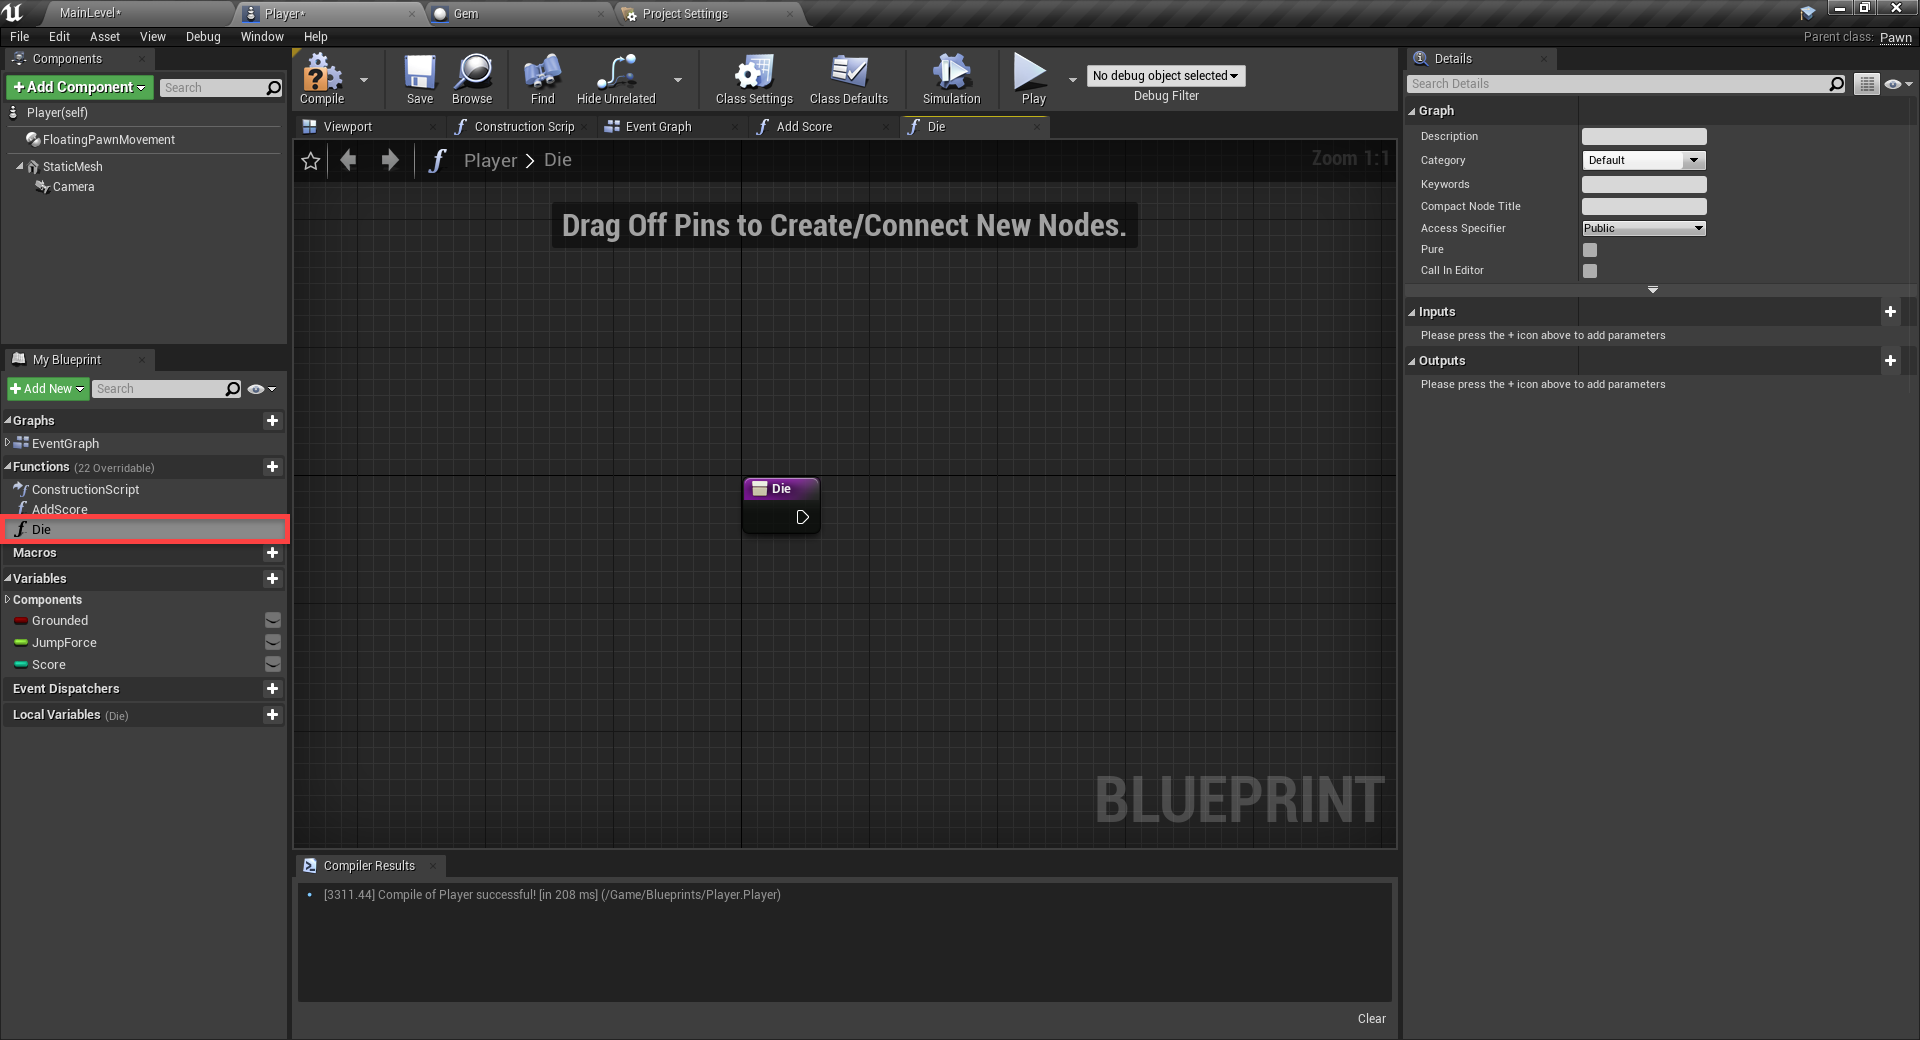 Dying logic in Event Graph for Unreal Engine